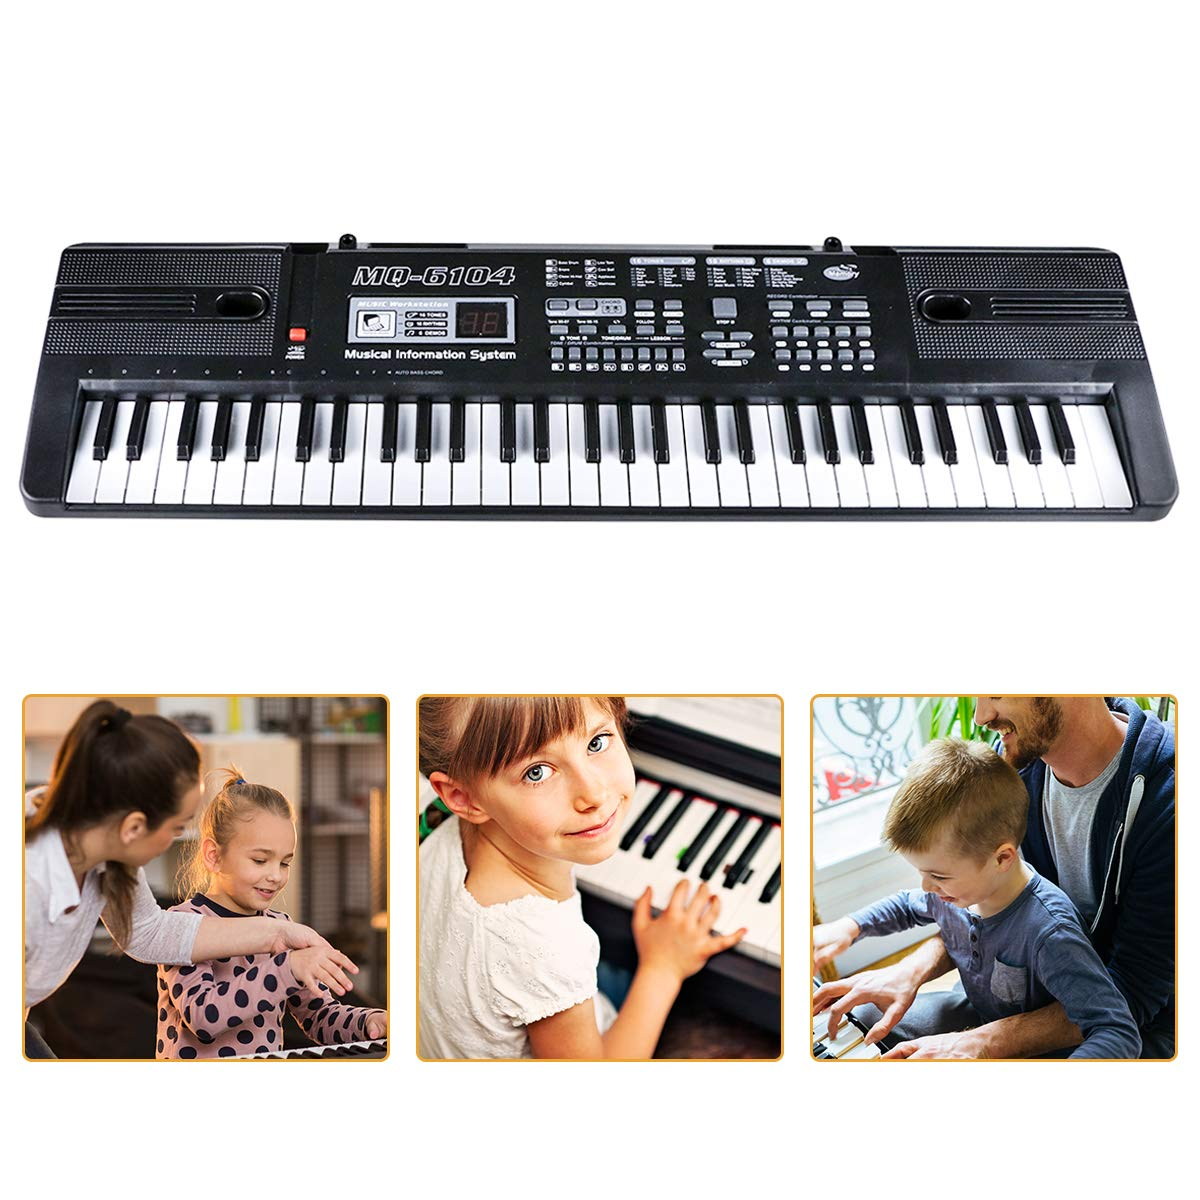 Digital Music Piano Keyboard 61 Key - Portable Electronic Musical Instrument with Microphone Kids Piano Musical Teaching Keyboard Toy For Birthday Christmas Festival Gift by Tencoz (Image #6)